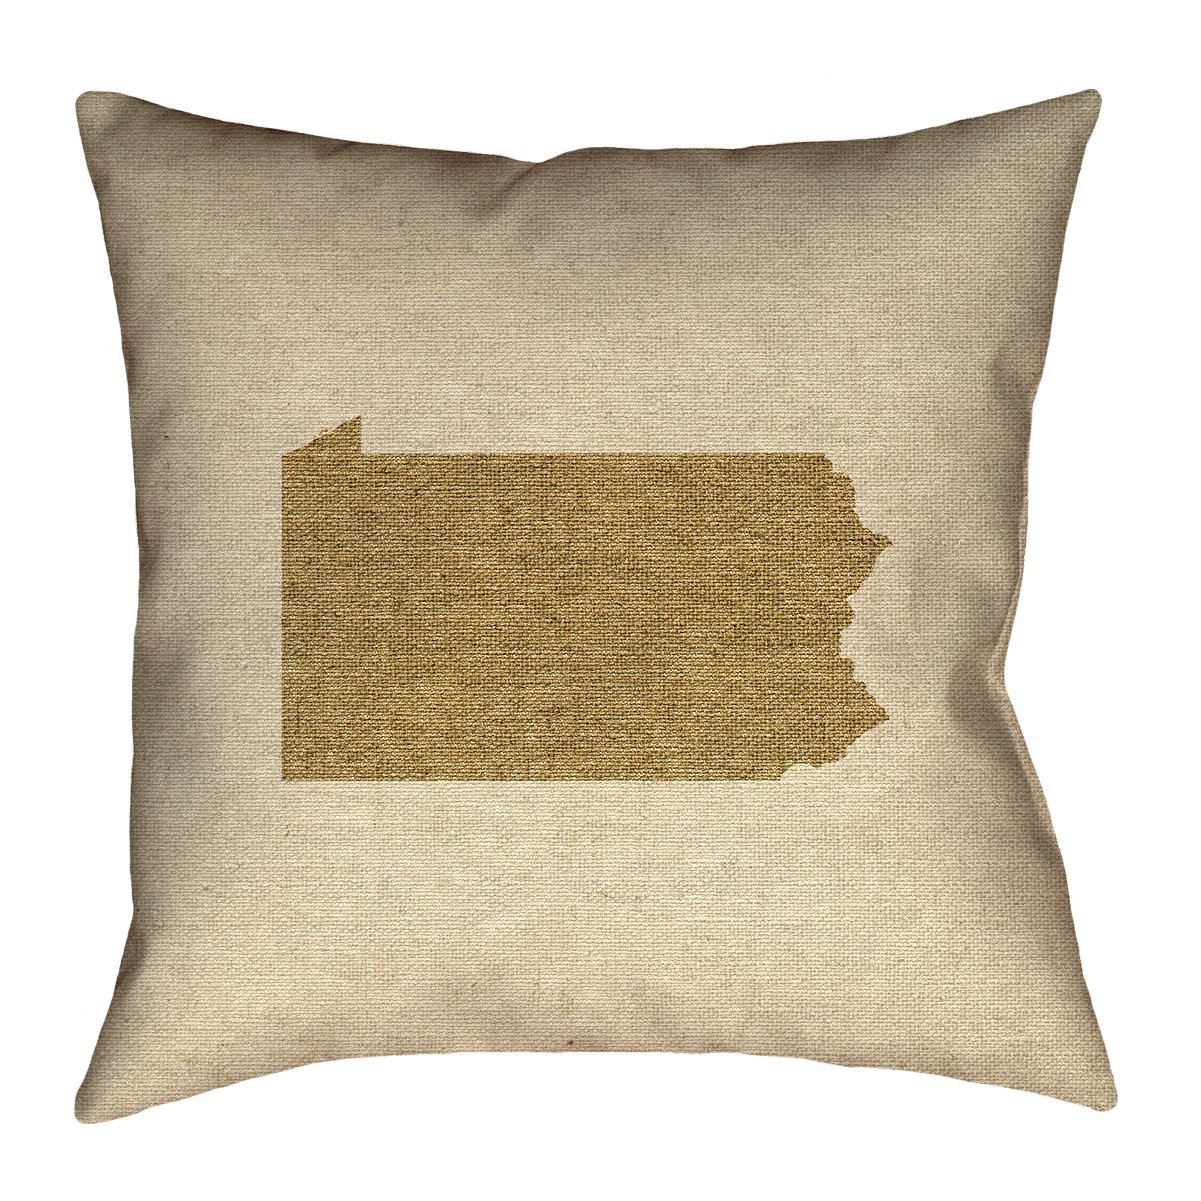 ArtVerse Katelyn Smith 20 x 20 Faux Suede Double Sided Print with Concealed Zipper /& Insert Pennsylvania Canvas Pillow